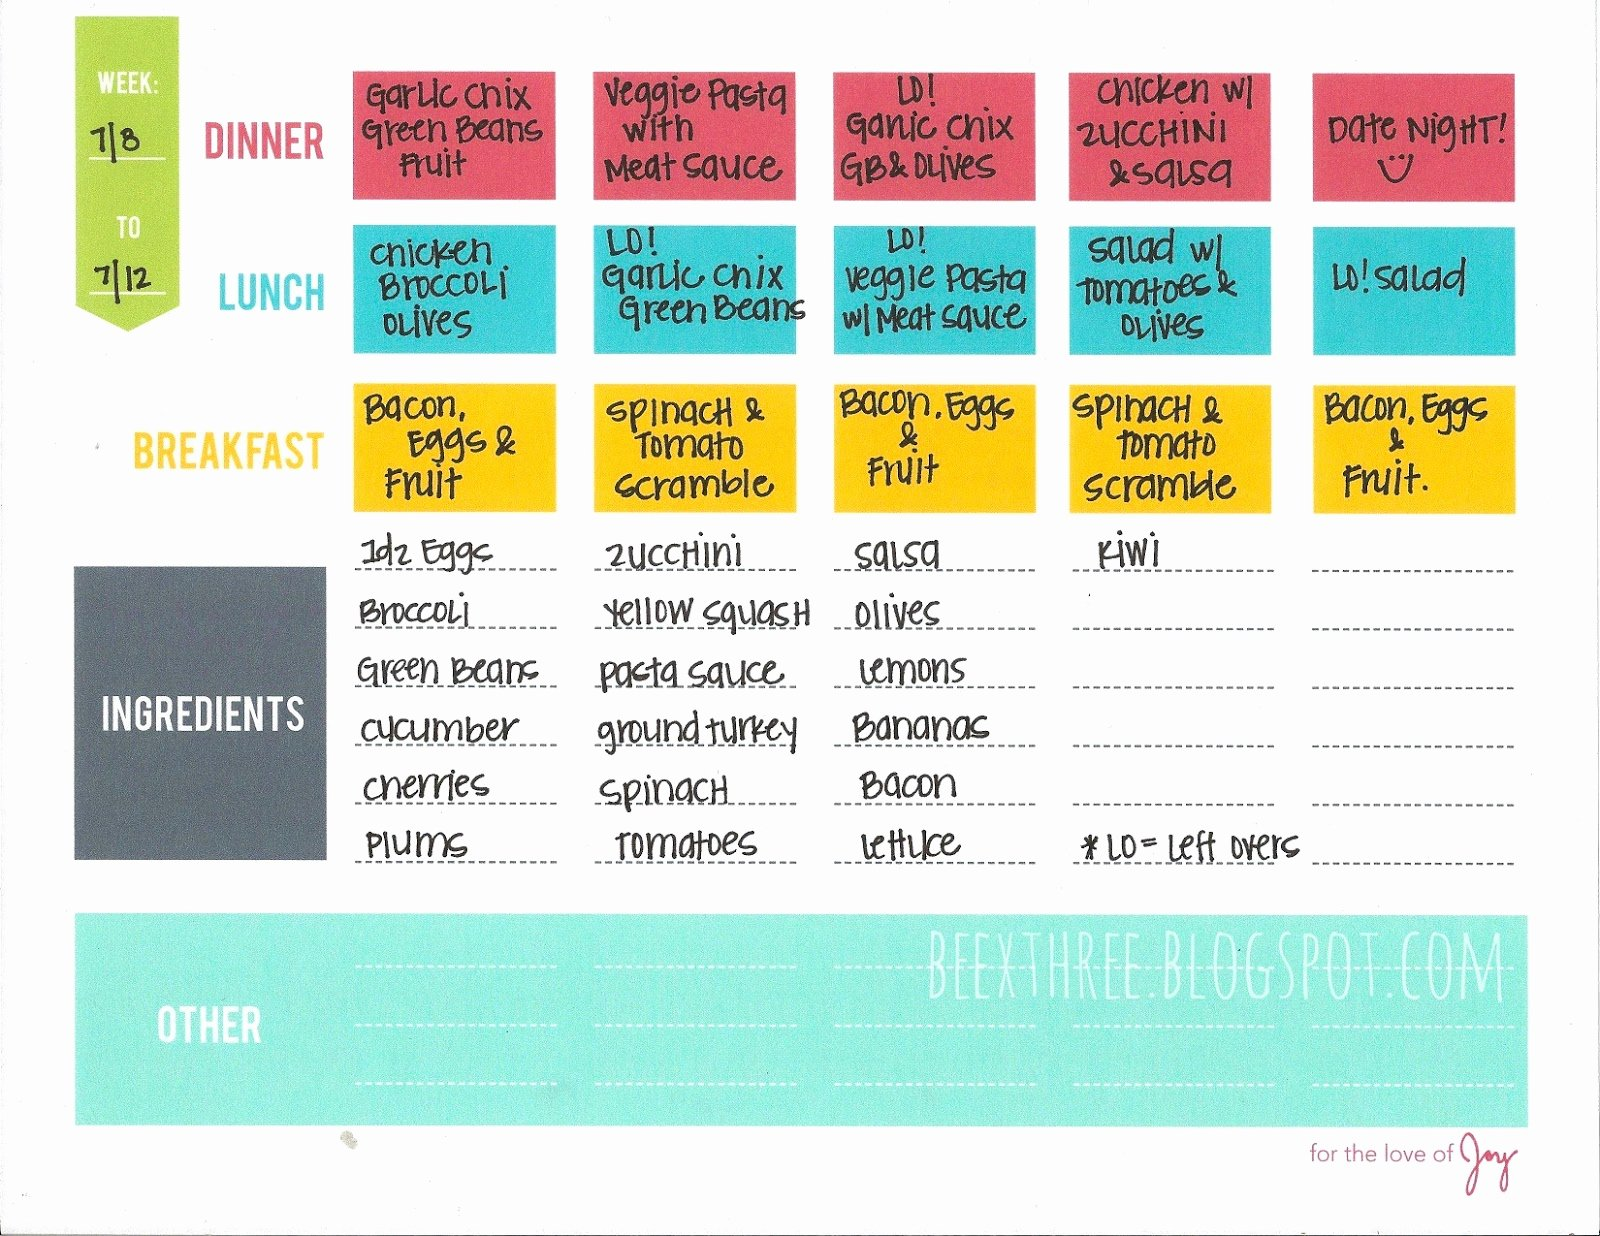 Whole 30 Meal Plan Template Inspirational Three B S whole 30 Meal Plan Week 1